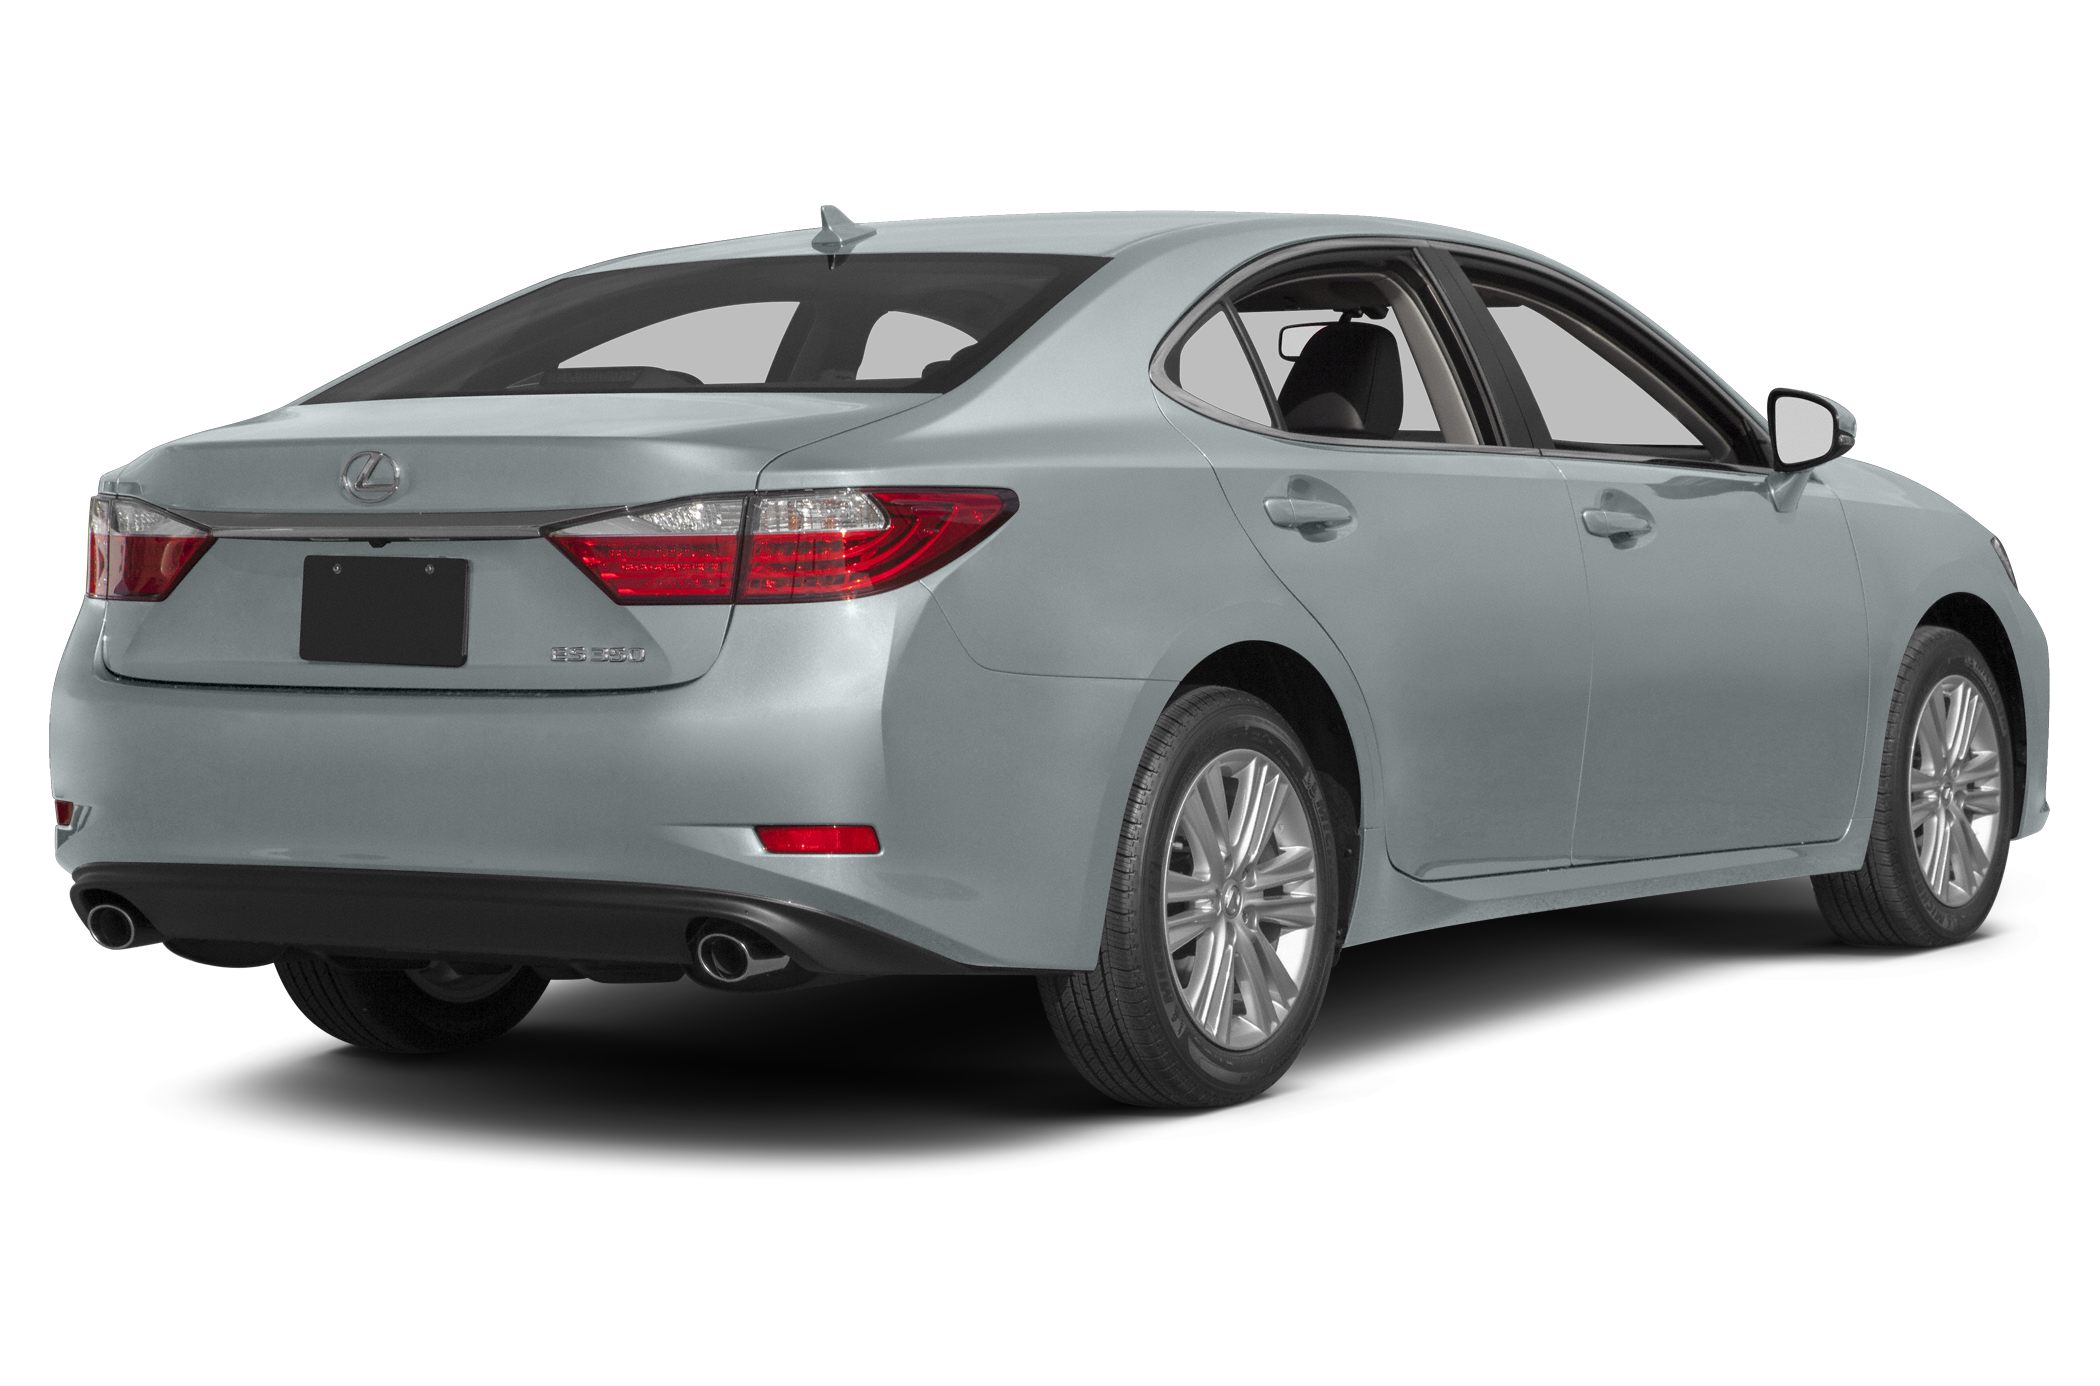 Lexus ES 350 Red free image editing software